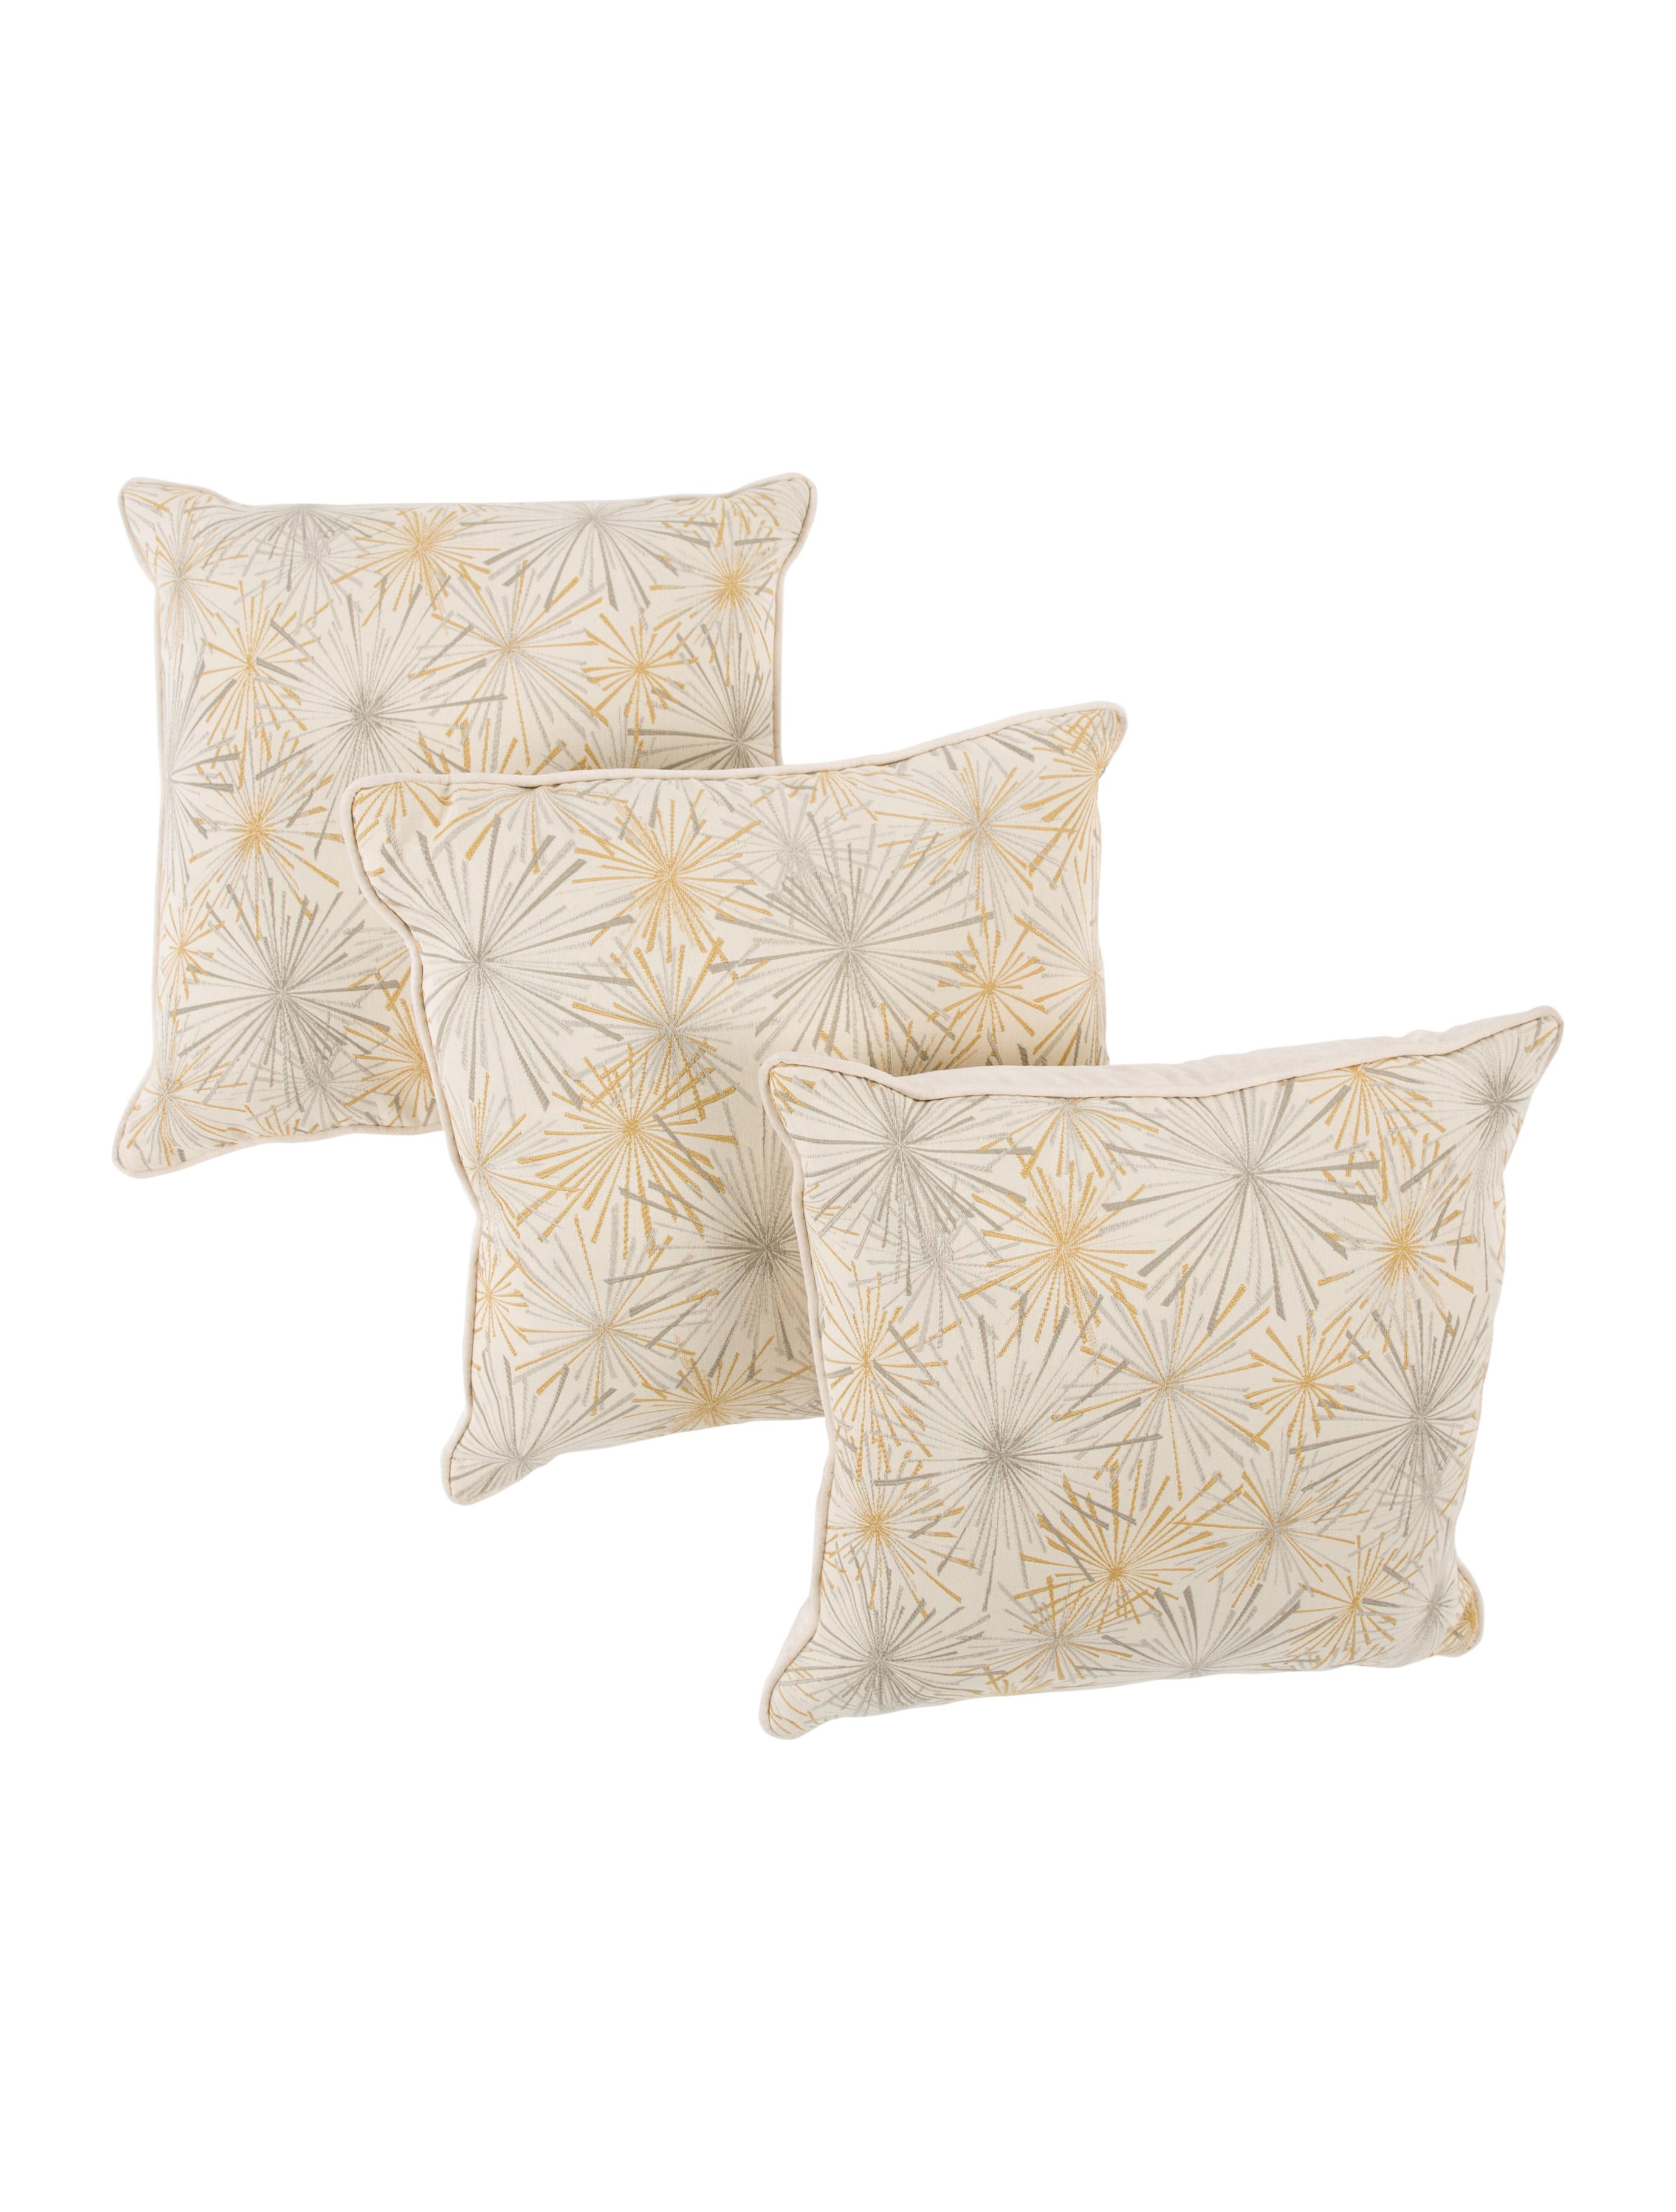 Mitchell Gold + Bob Williams Set of 3 Starburst Throw Pillows - Pillows And Throws - MTCHL20038 ...